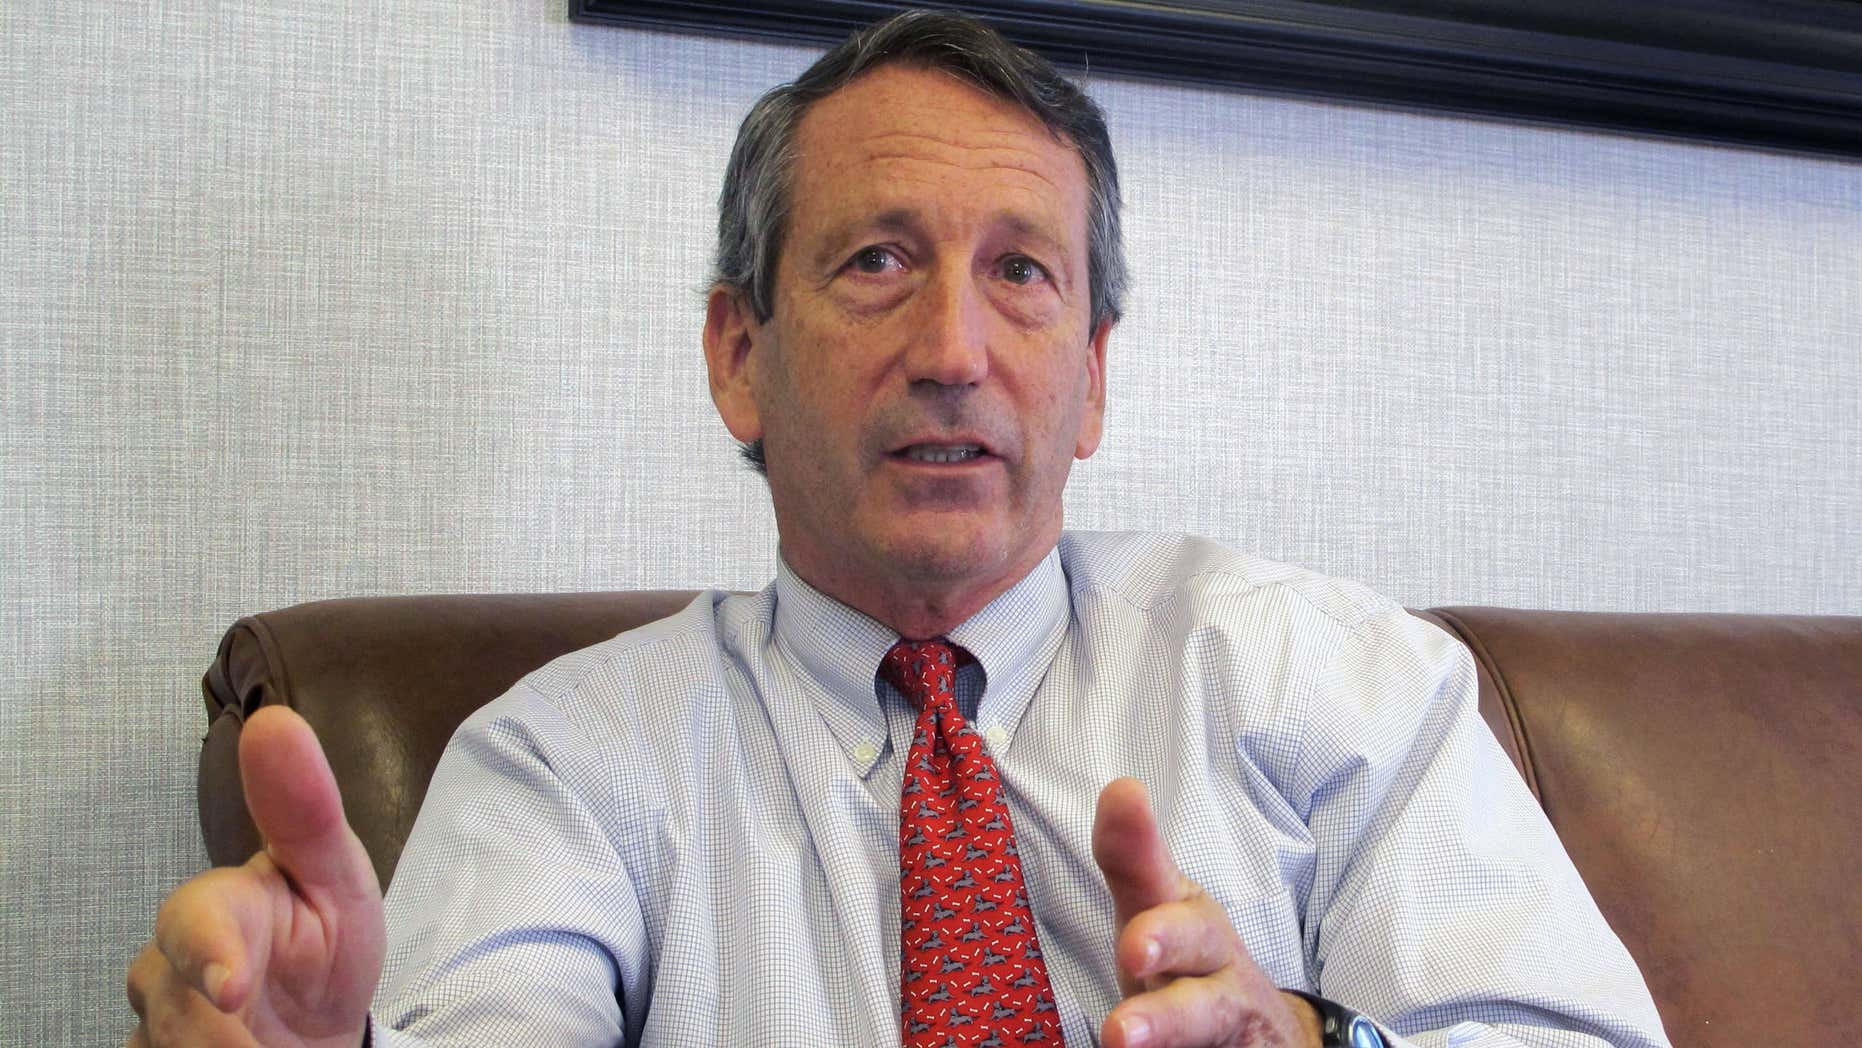 FILE - In this Dec. 18, 2013, file photo, U.S. Rep. Mark Sanford, R-S.C., discusses his first months back in Congress during an interview in Mount Pleasant, S.C.